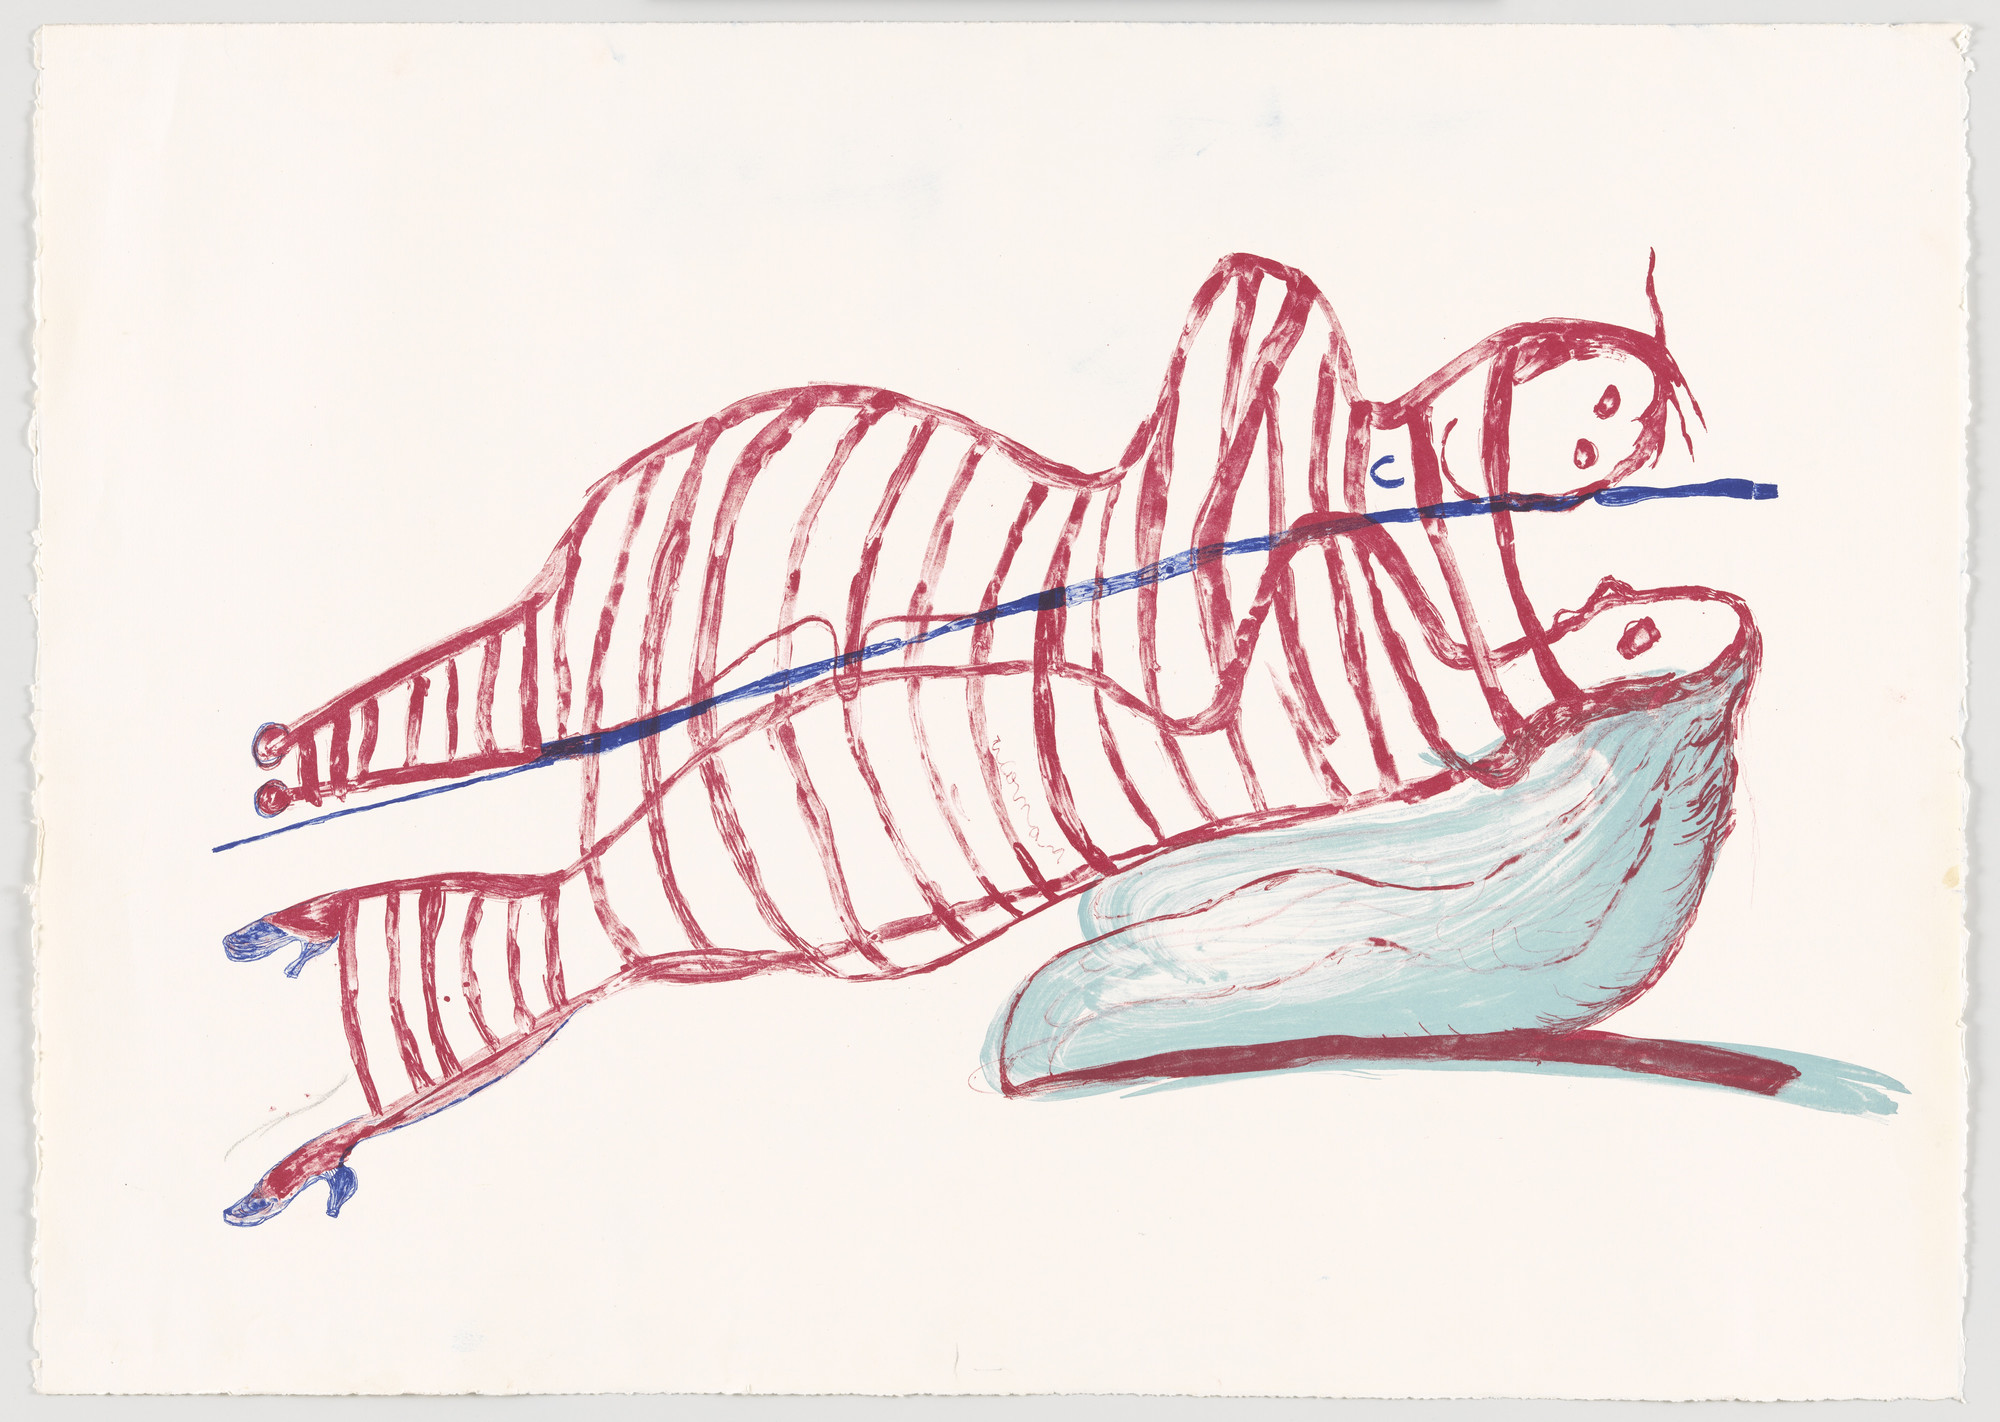 Louise Bourgeois. Hamlet and Ophelia. 1997